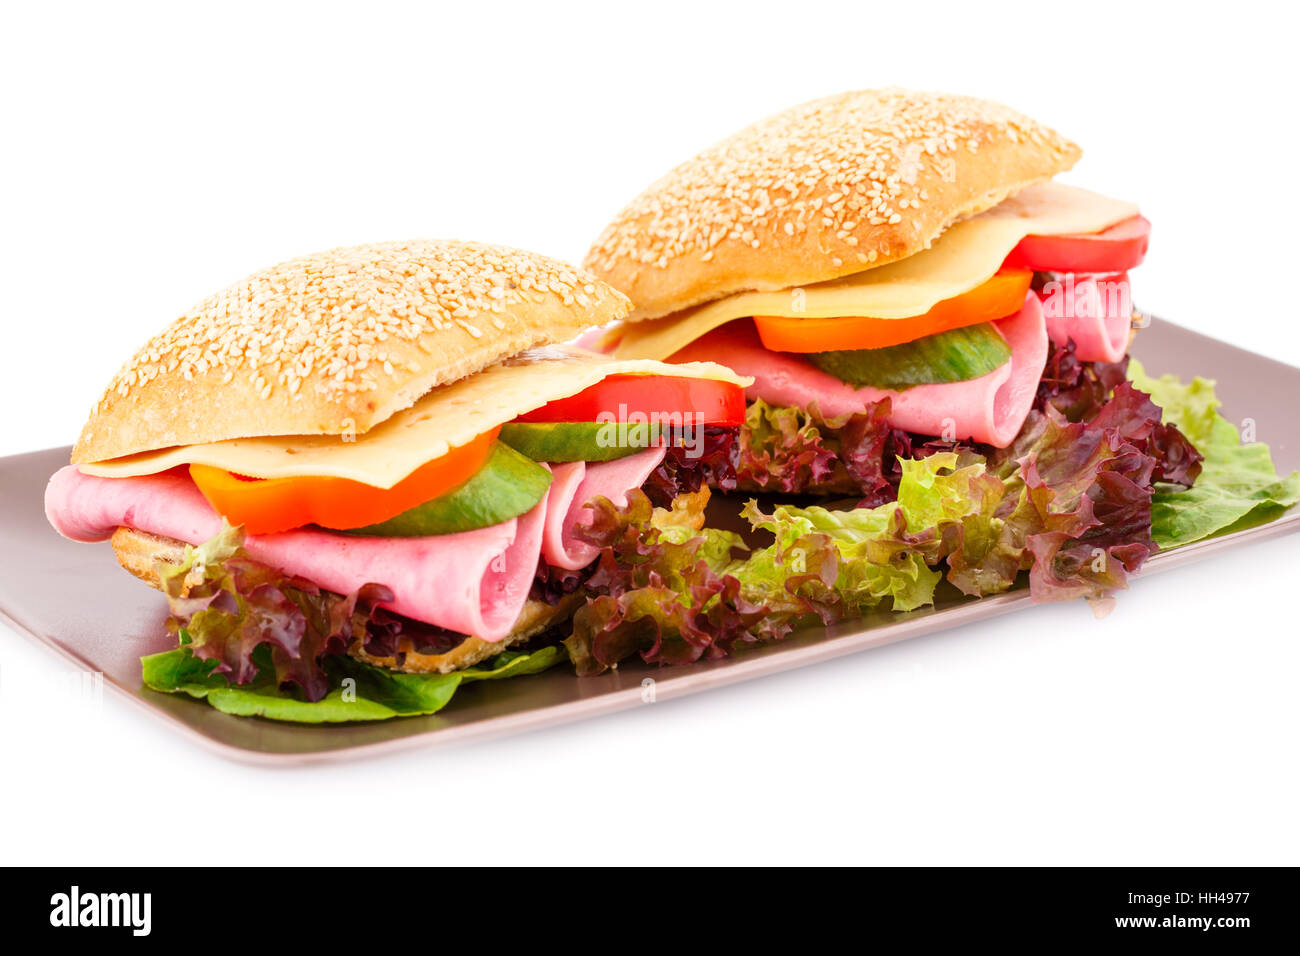 Sandwiches with fresh vegetables, ham and cheese on plate. - Stock Image